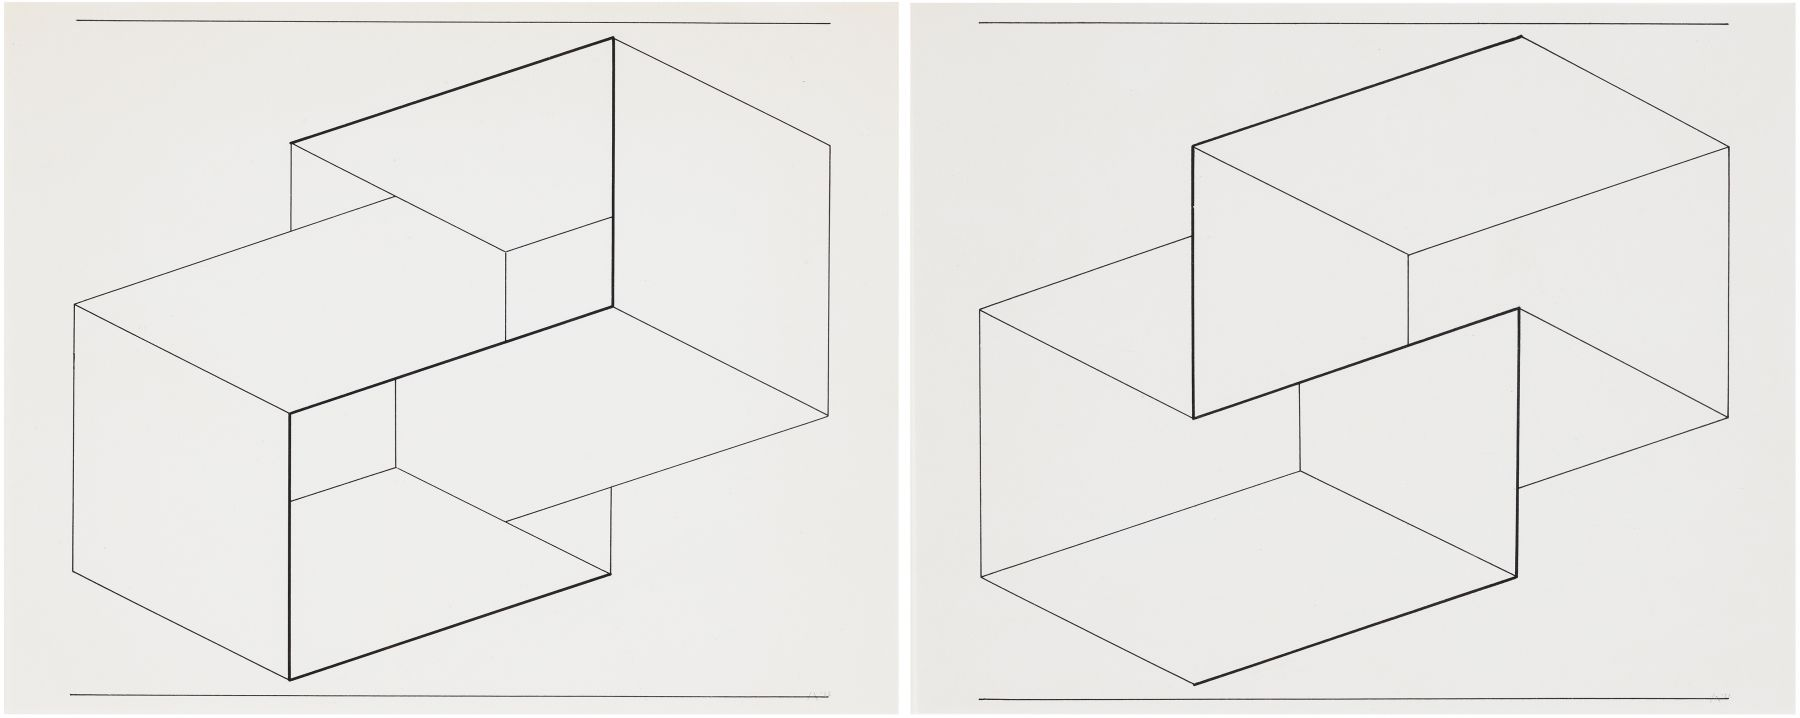 Josef Albers (1888-1976) Drawing of a Structural Constellation I & II: A pair of drawings, 1962